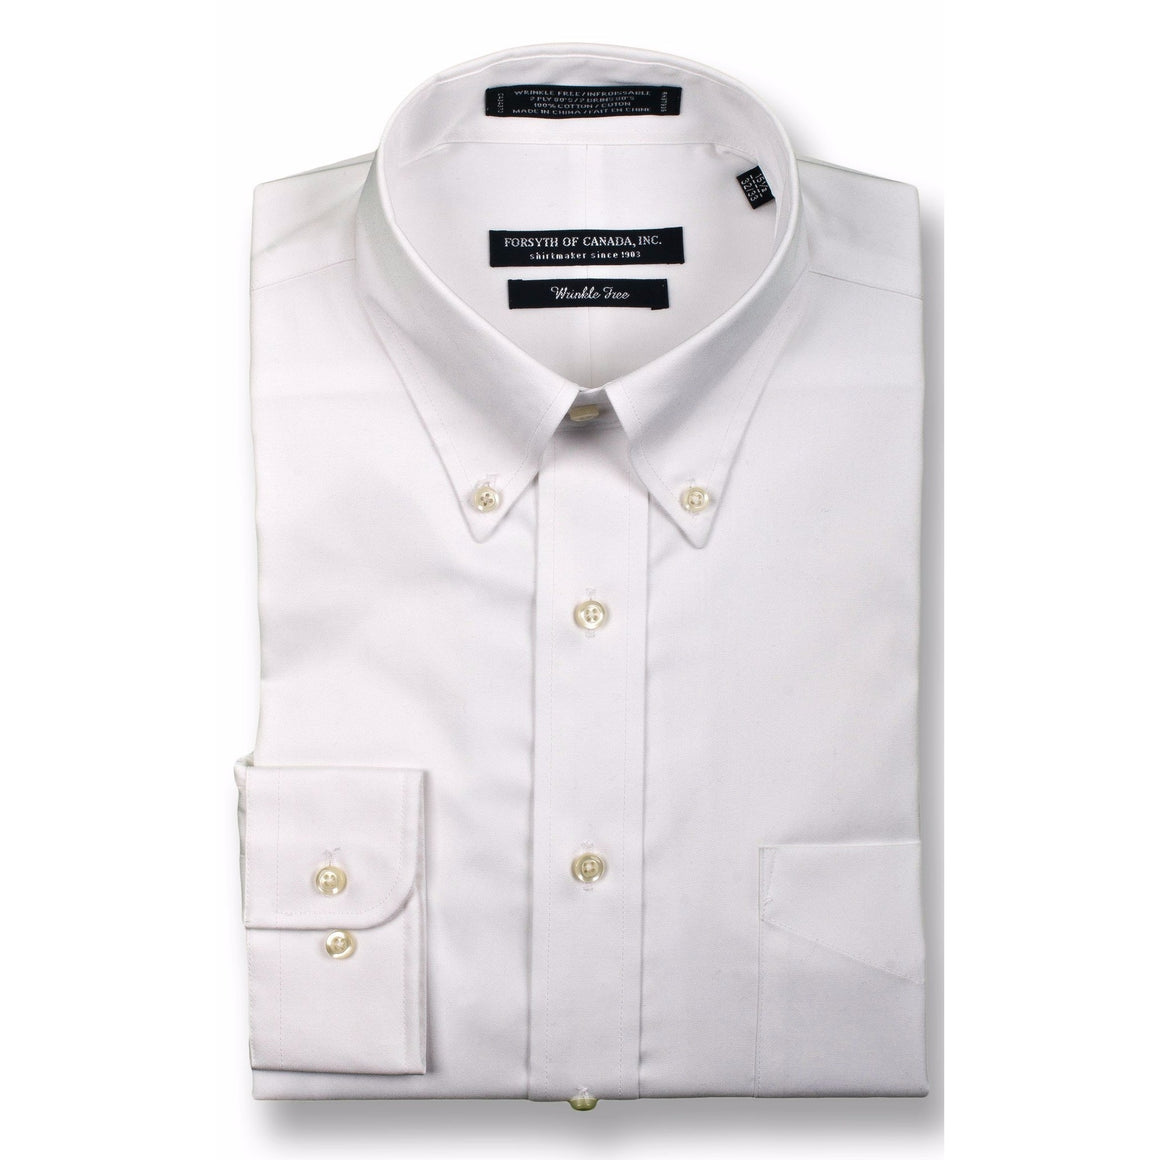 FORSYTH OF CANADA™ - THE FREEDOM SHIRT™ - LUXURY 2 PLY COTTON - BUTTON DOWN COLLAR - 539MAIN - 1